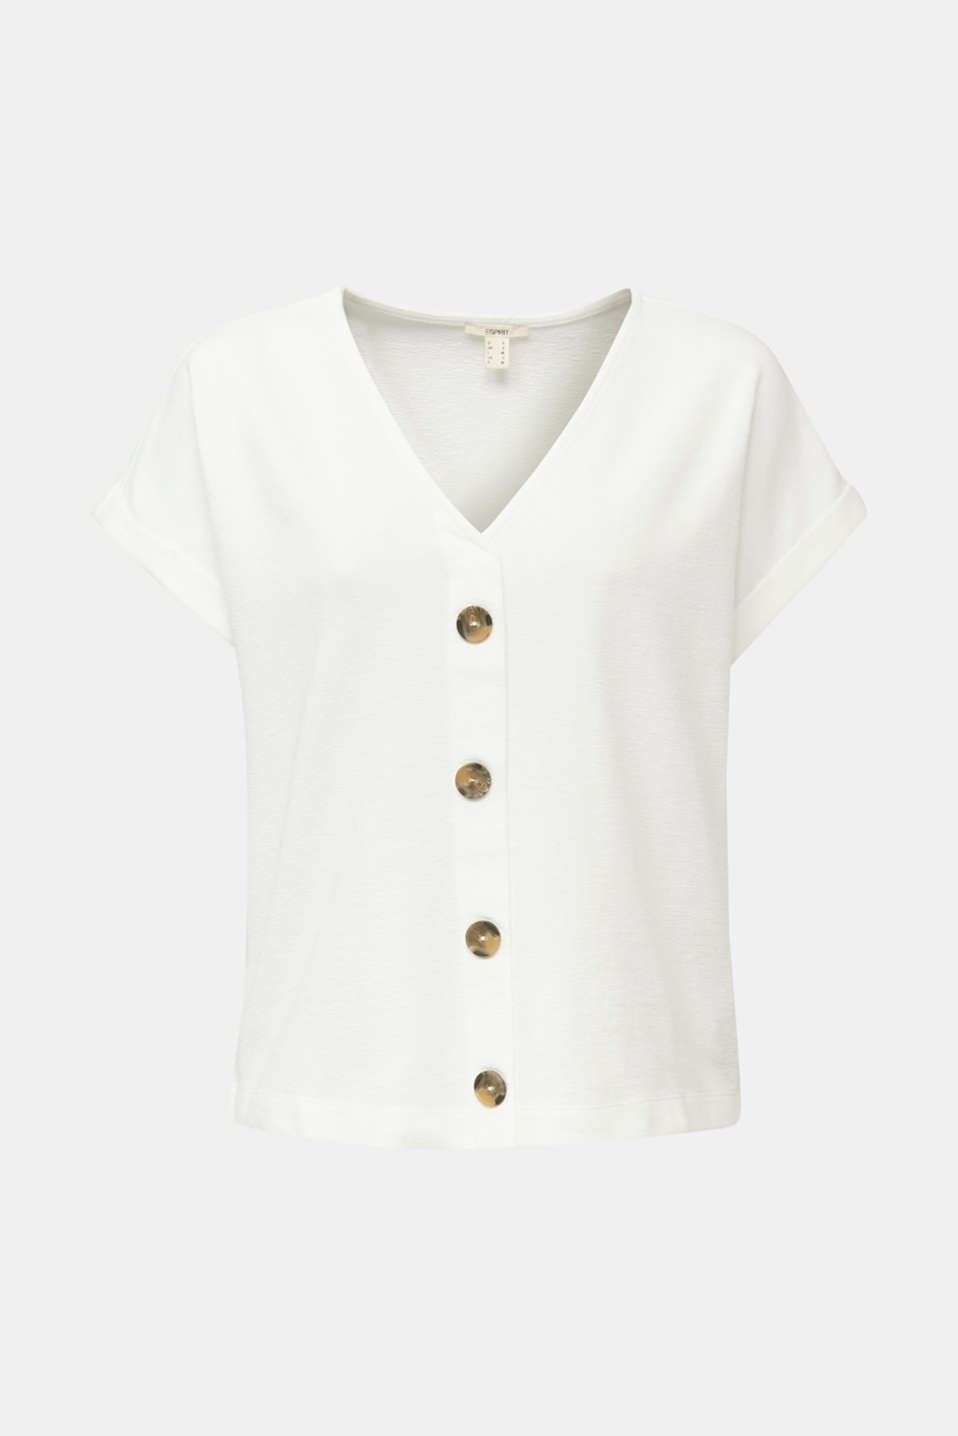 Textured T-shirt with button placket, 100% cotton, OFF WHITE, detail image number 6